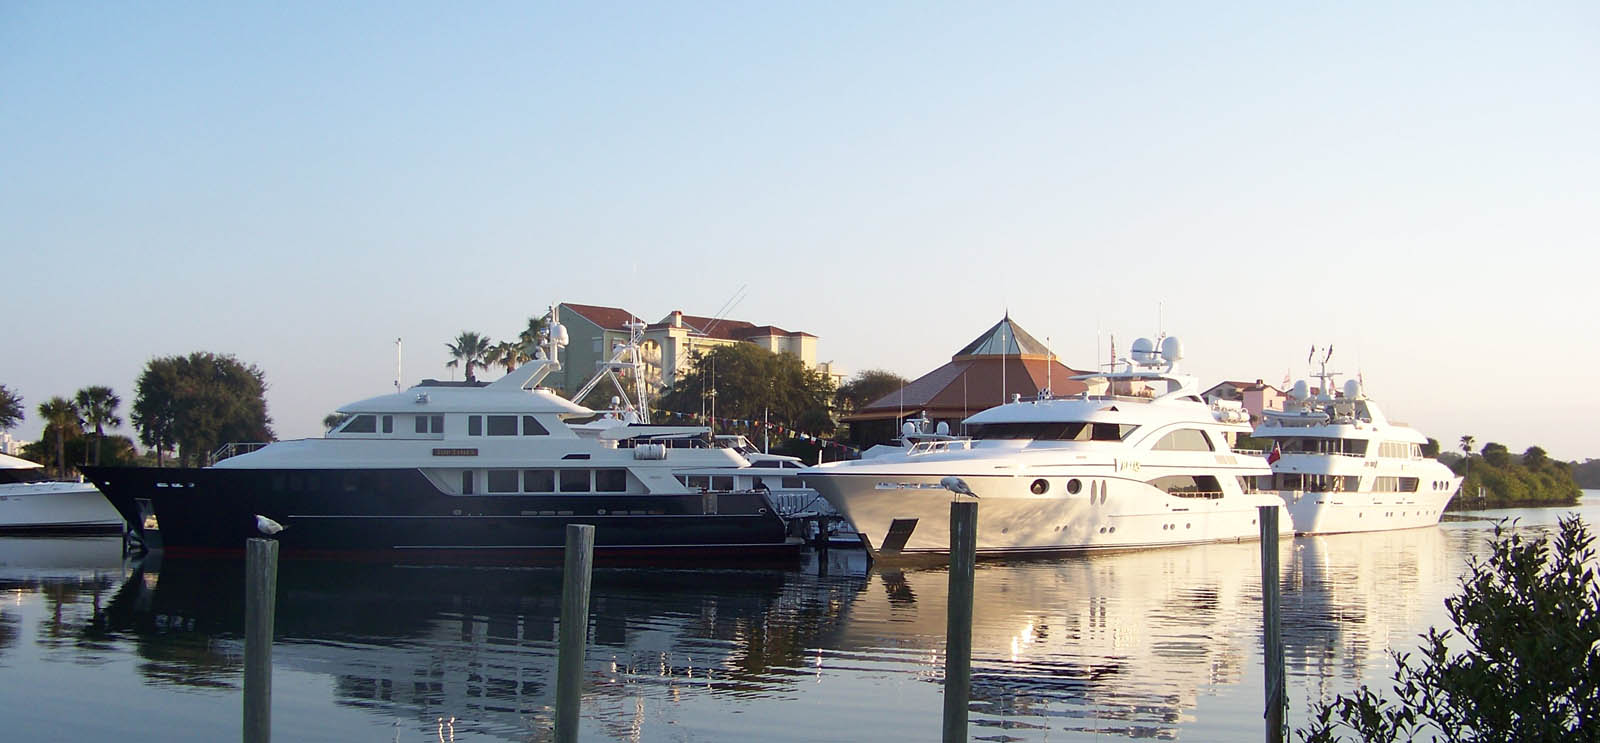 Daytona Beach marina in Florida